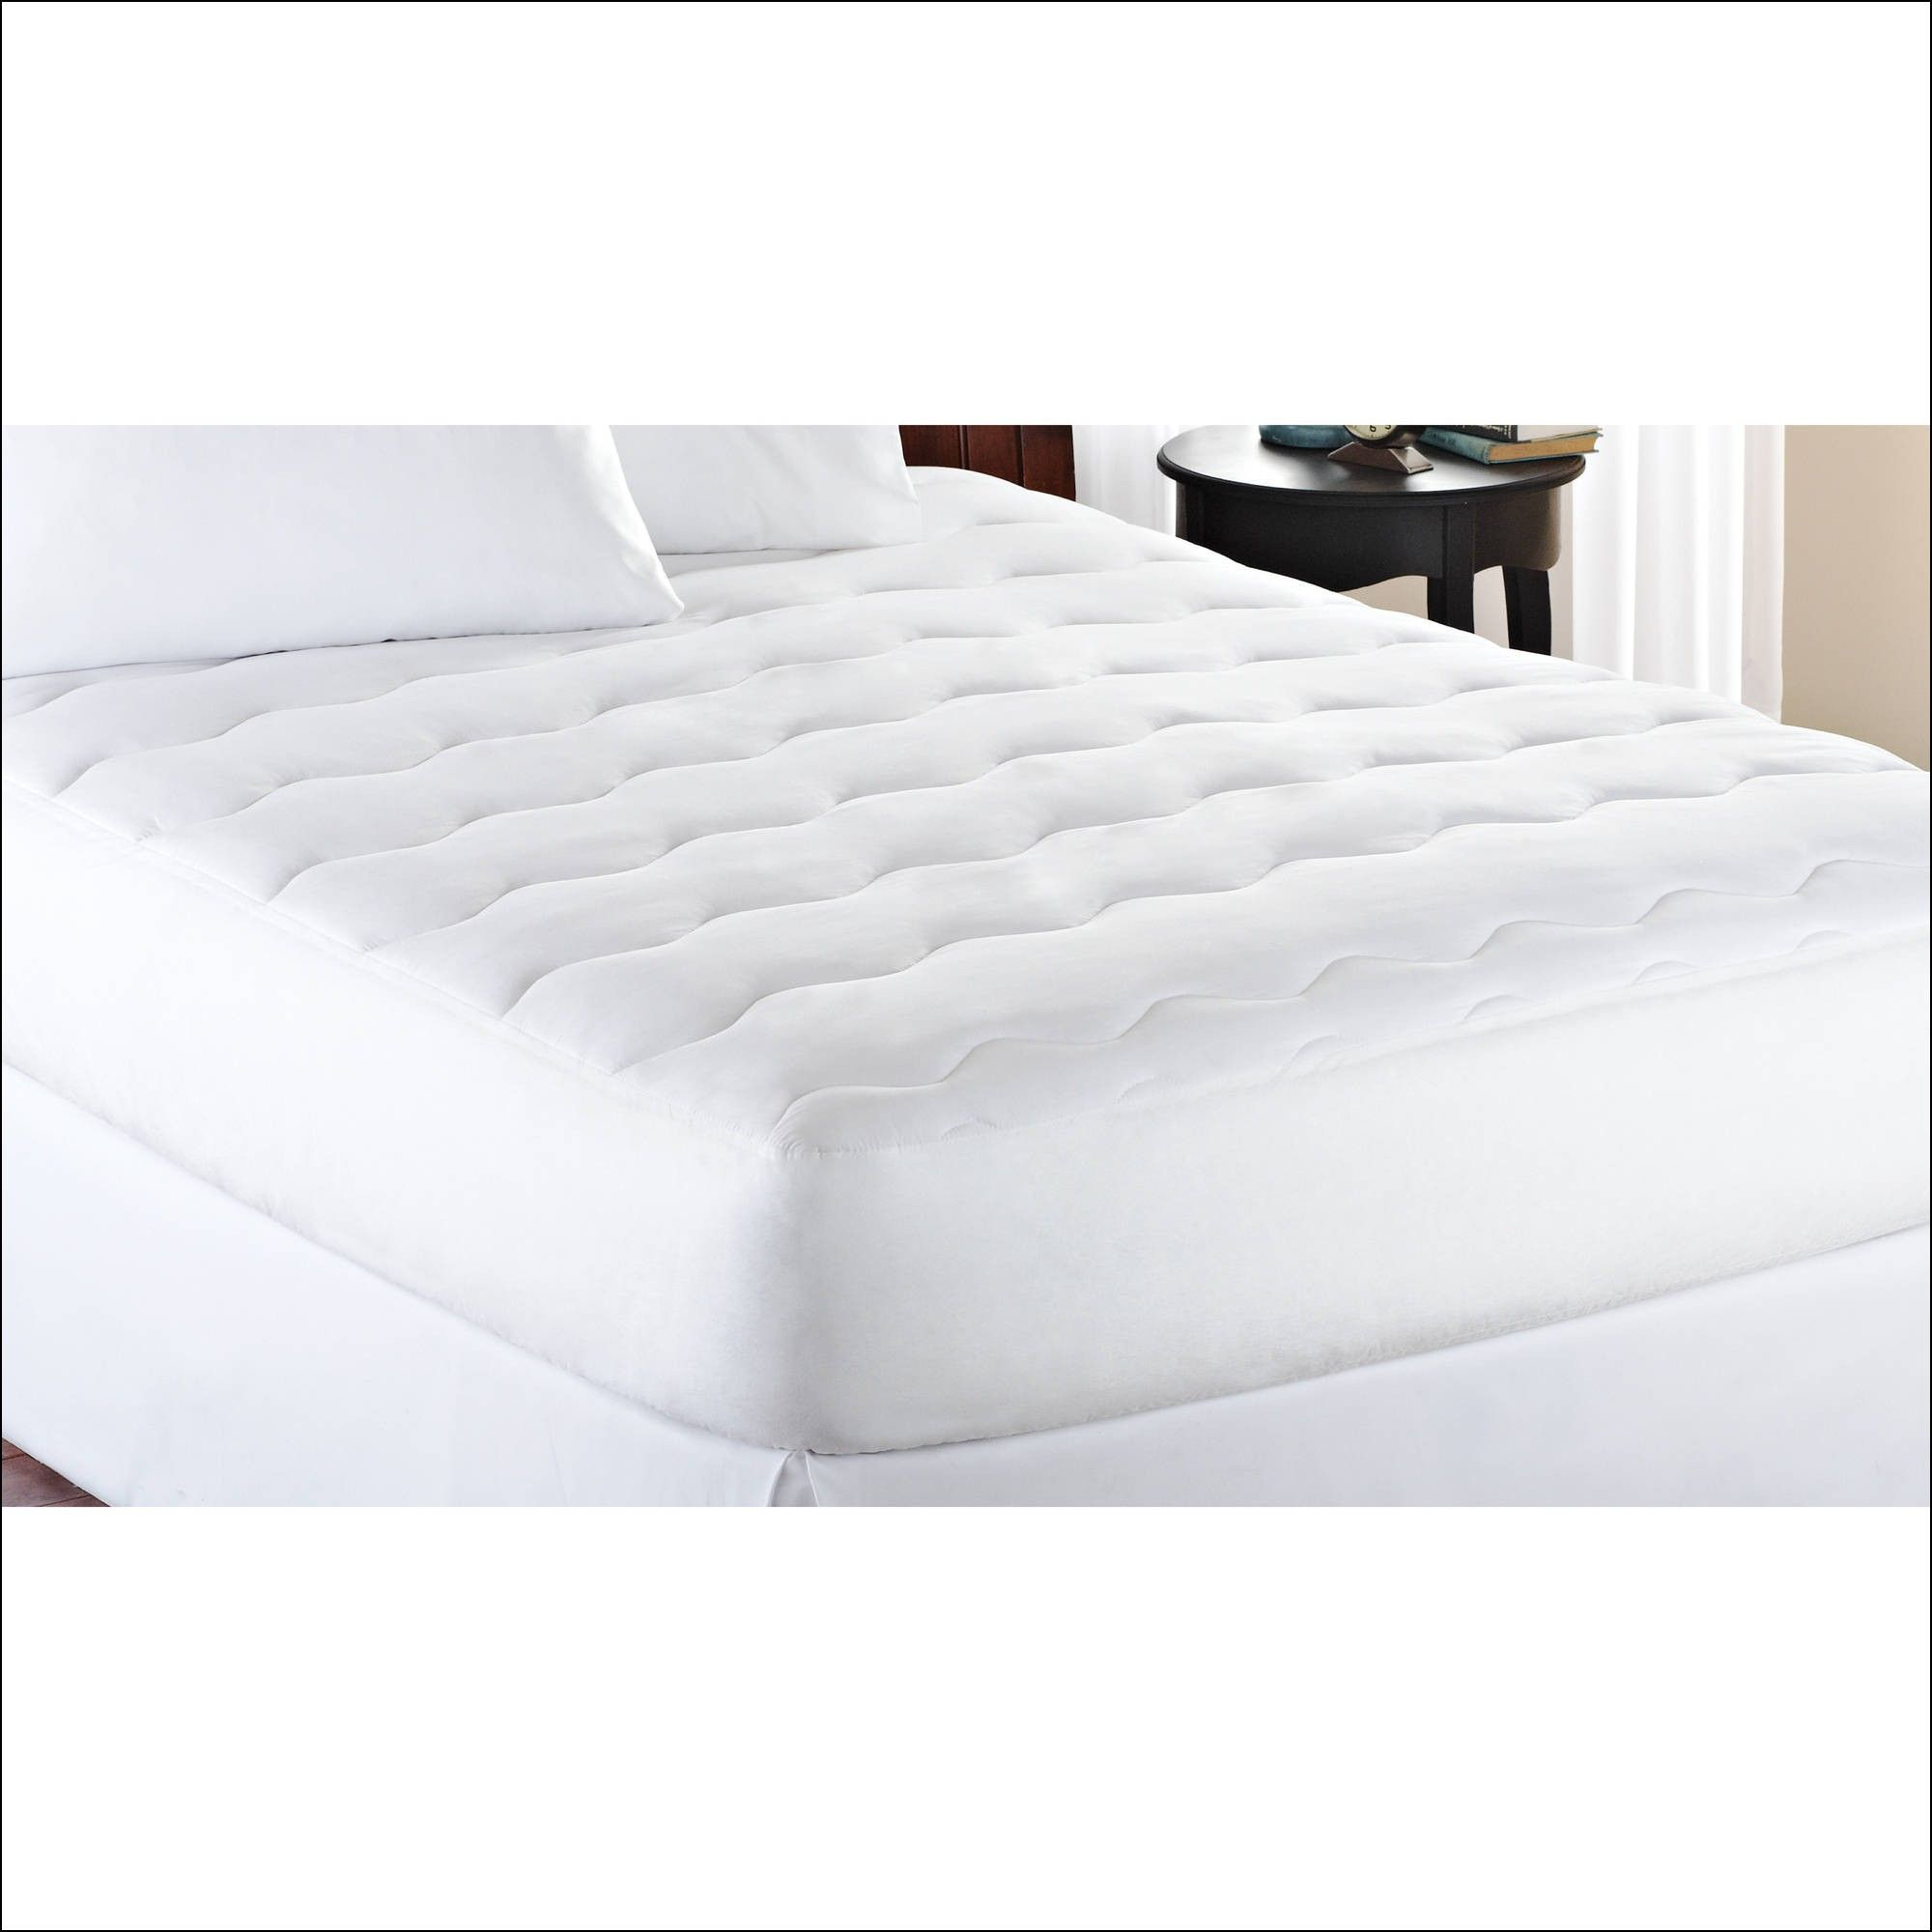 city sun beautysleep silo top plush valley mattress pillow plpt q sleep shop topper simmons